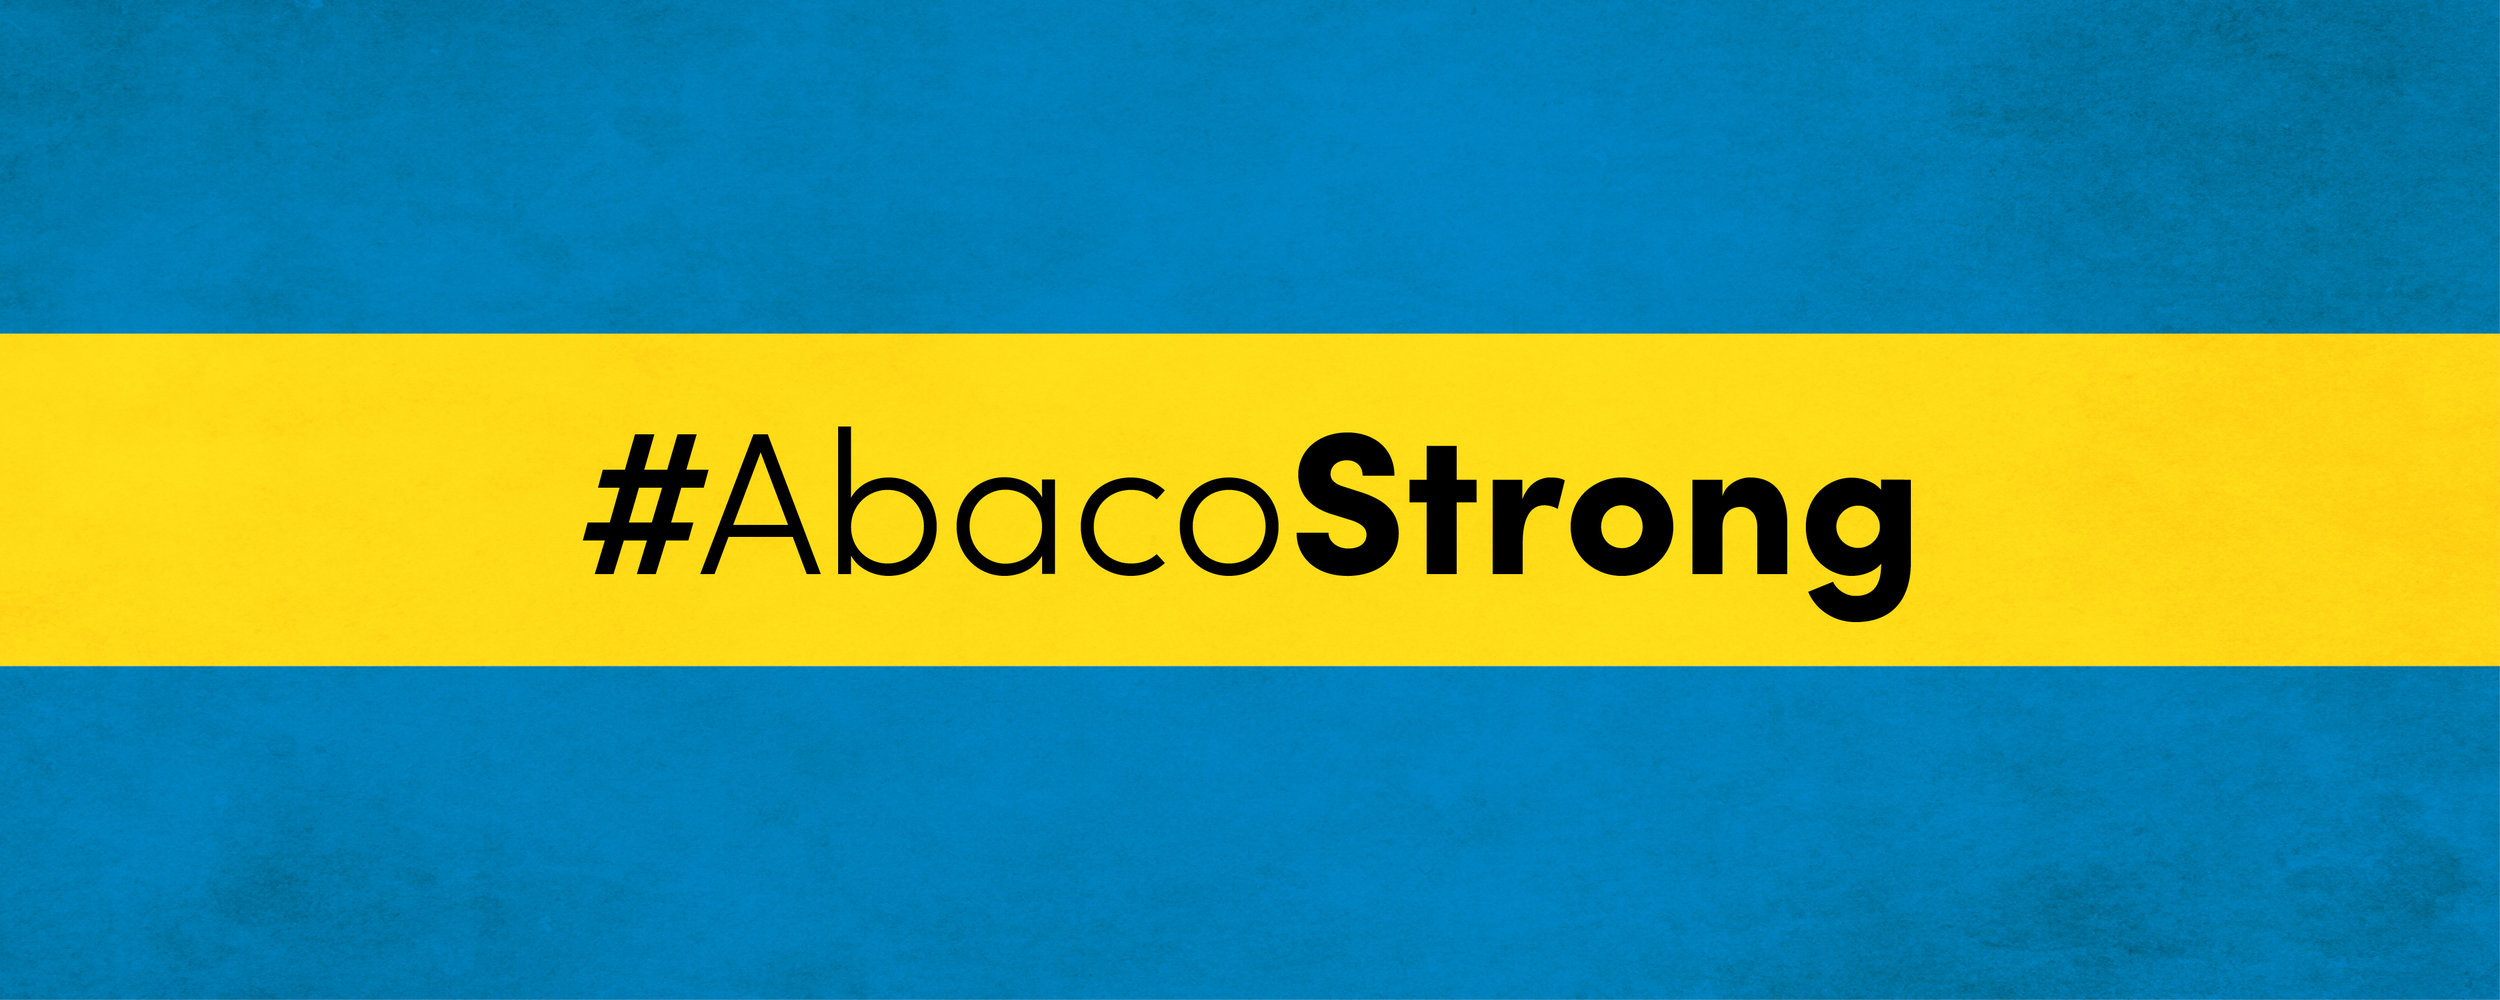 Abaco Strong.jpg